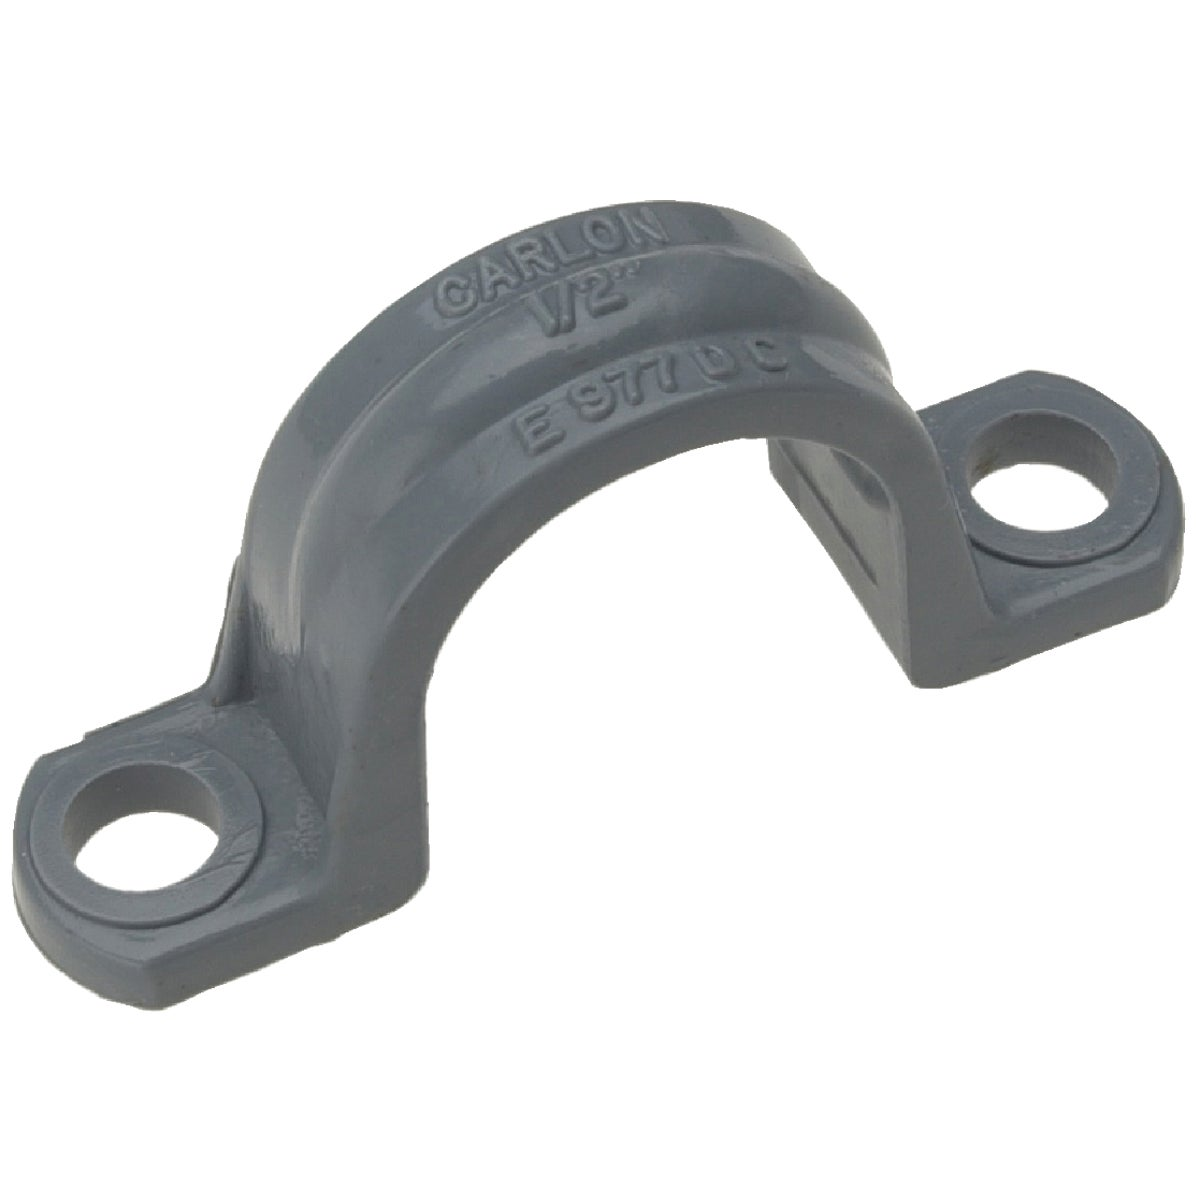 "3"" PVC STRAP - E977LCCAR by Thomas & Betts"